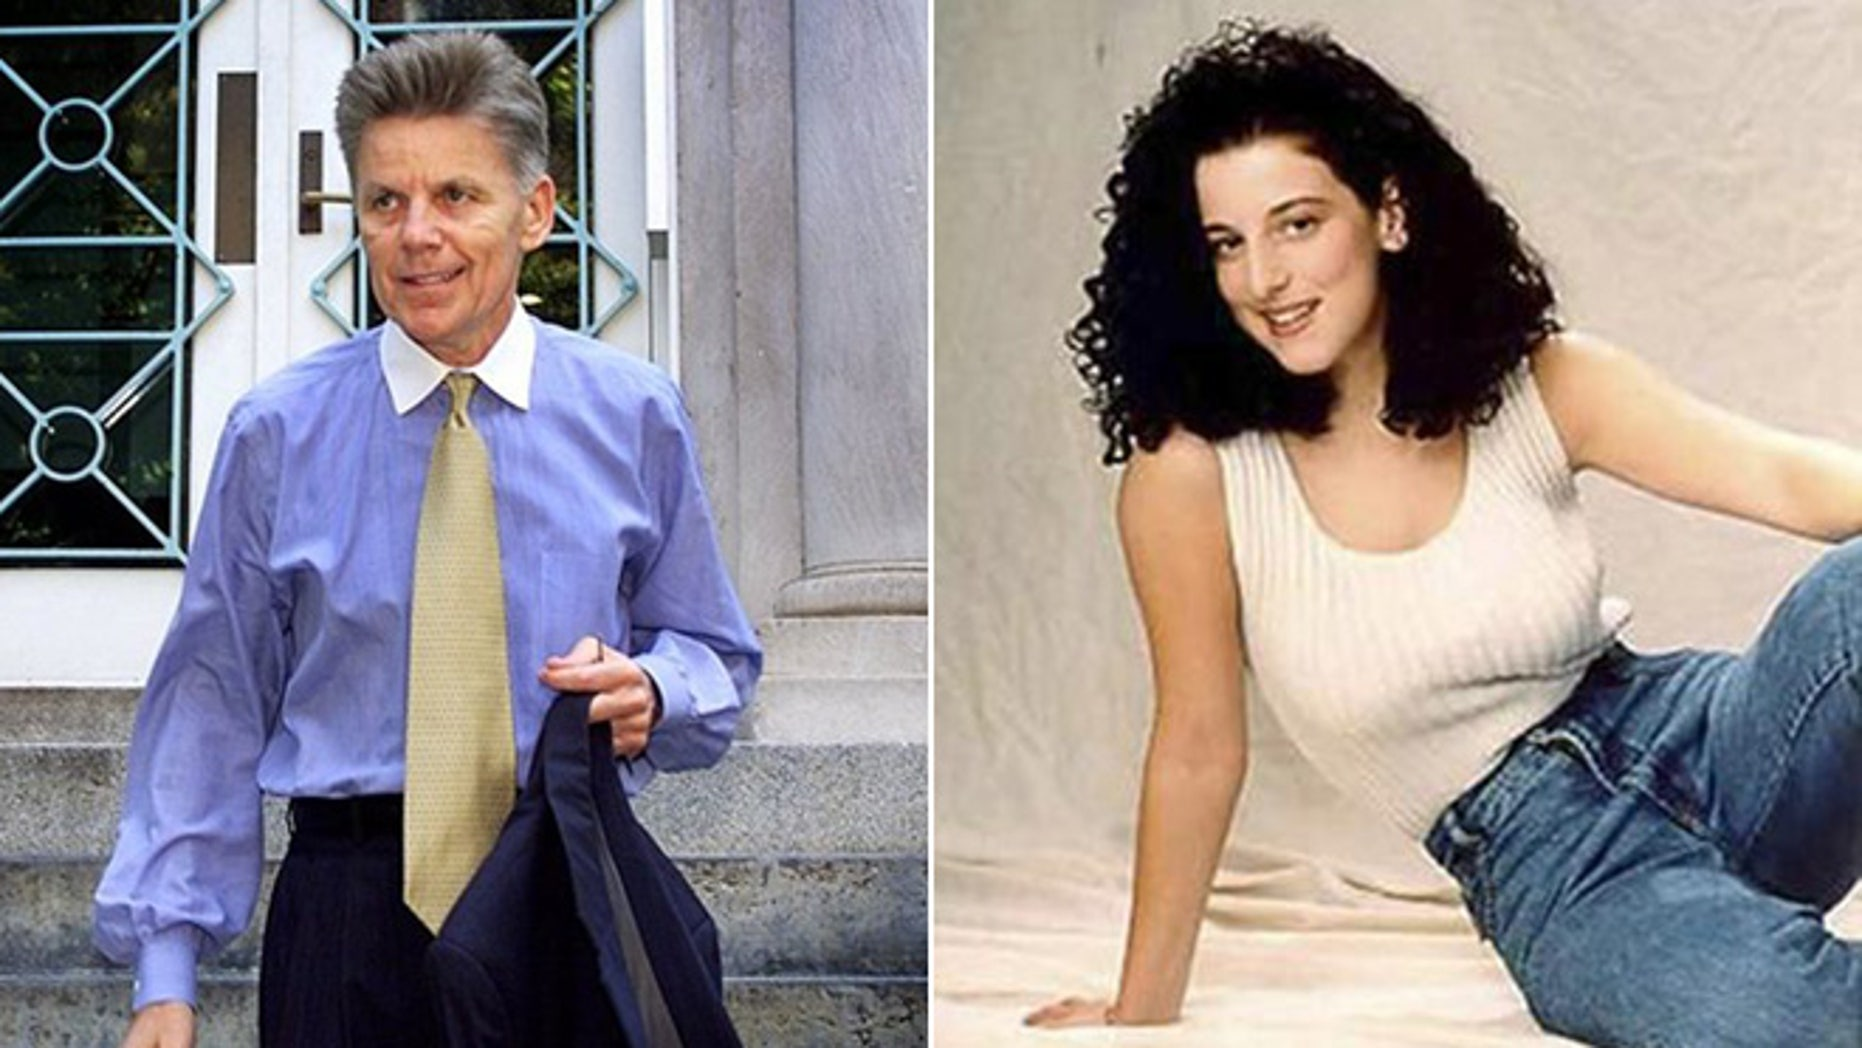 Former Rep. Gary Condit, D-Calif., and Chandra Levy are shown in this AP and Reuters composite.